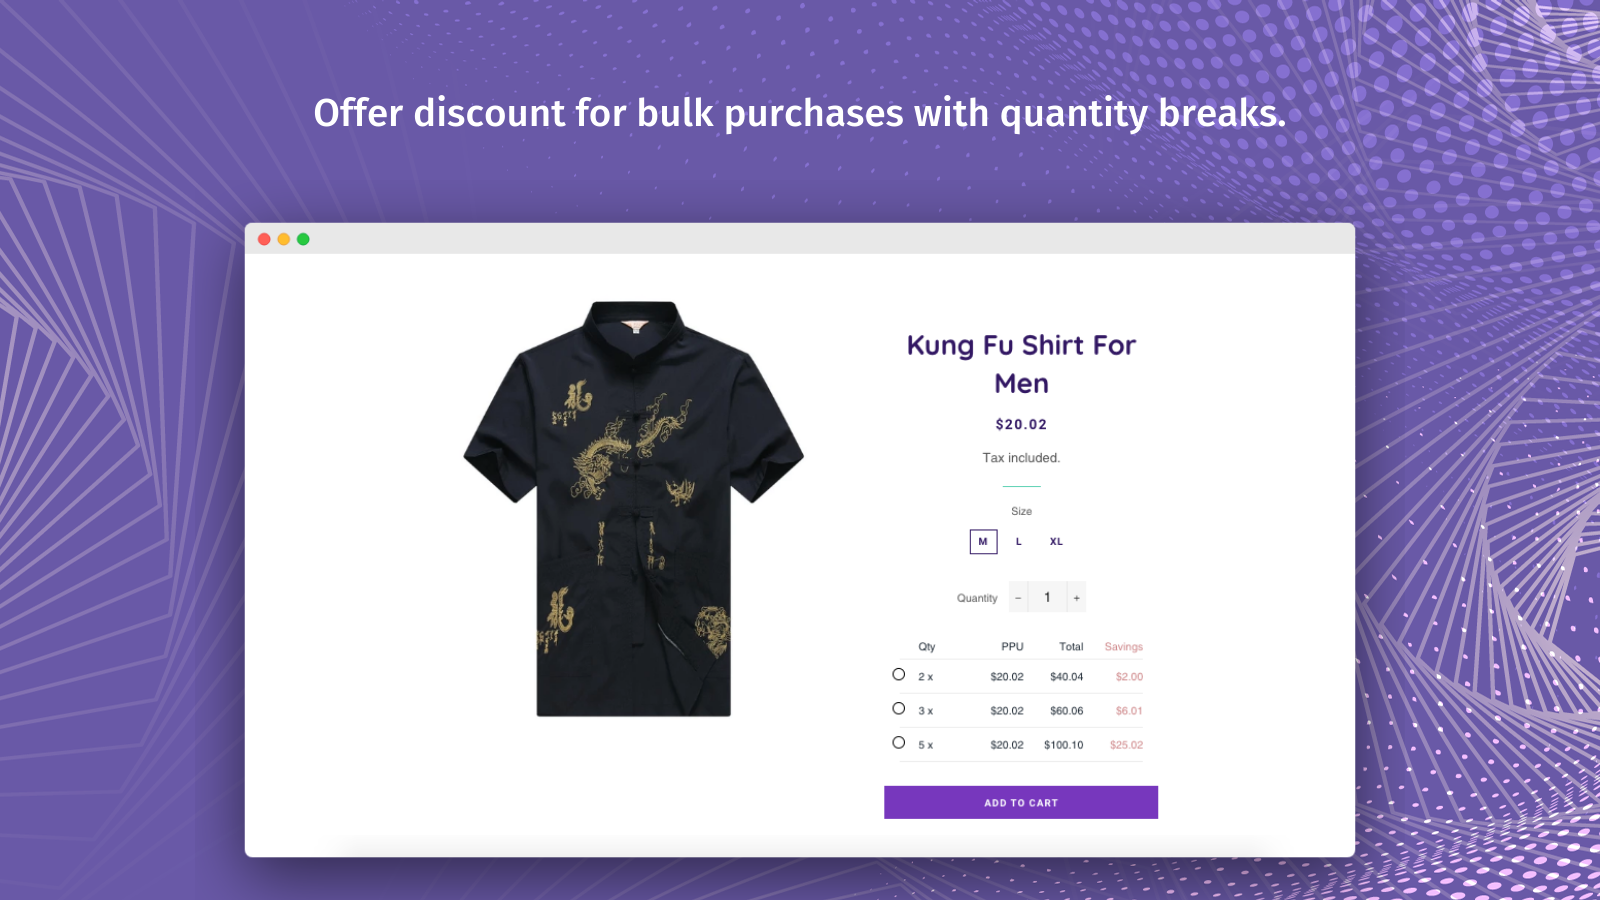 Sell More With Volume Discounts, Tiered Pricing, Quantity Breaks